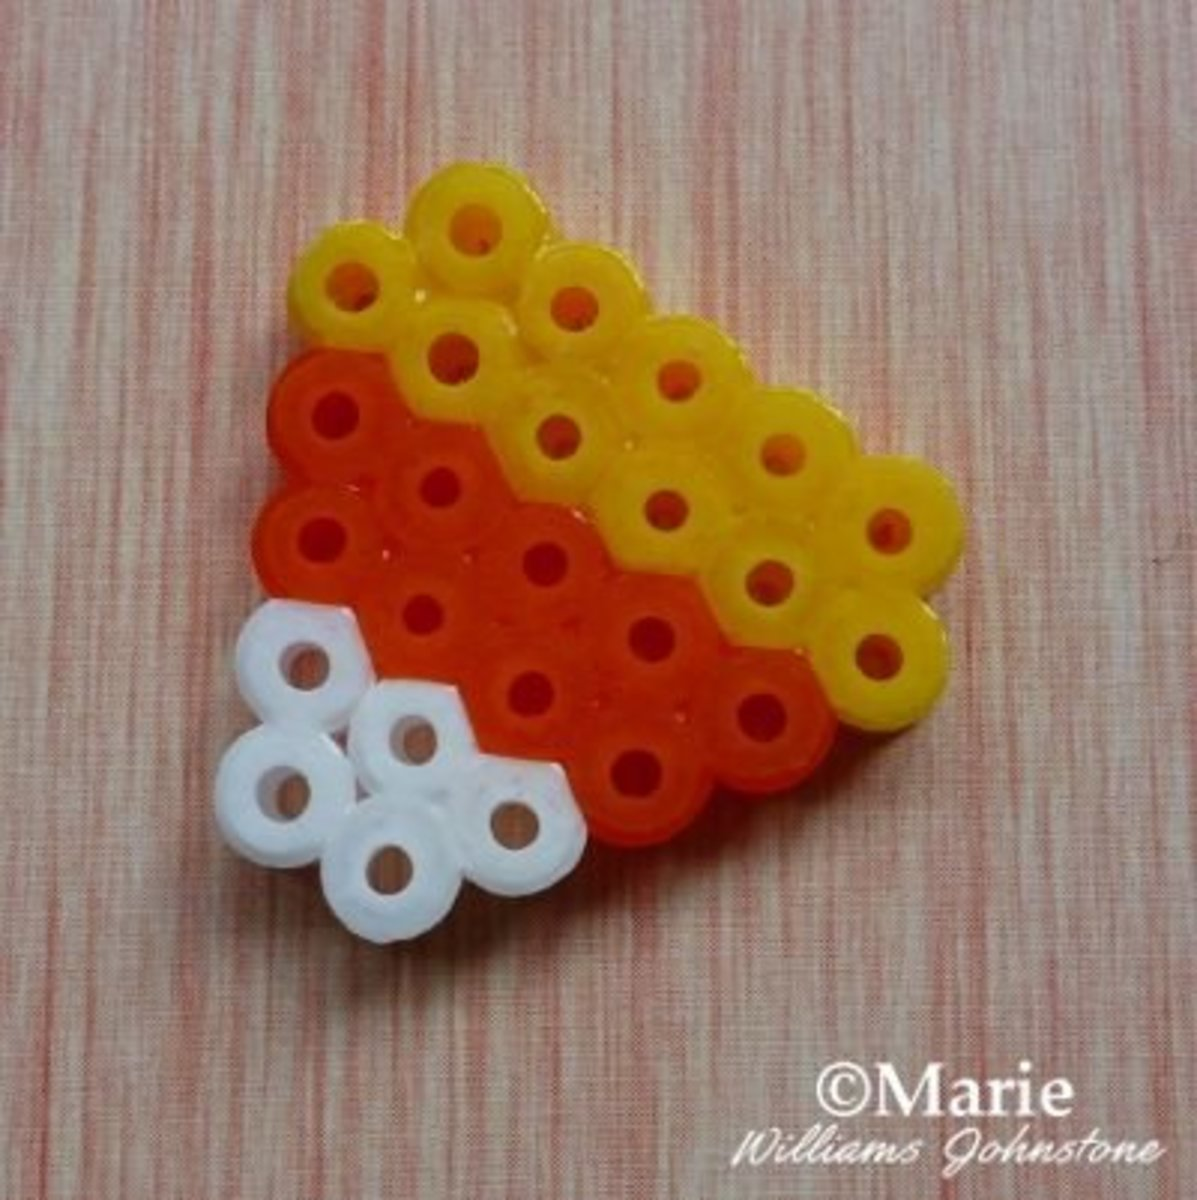 Make some tiny candy corn designs with fused perler beads for Halloween and turn them into charms, necklaces or even little earrings to wear.